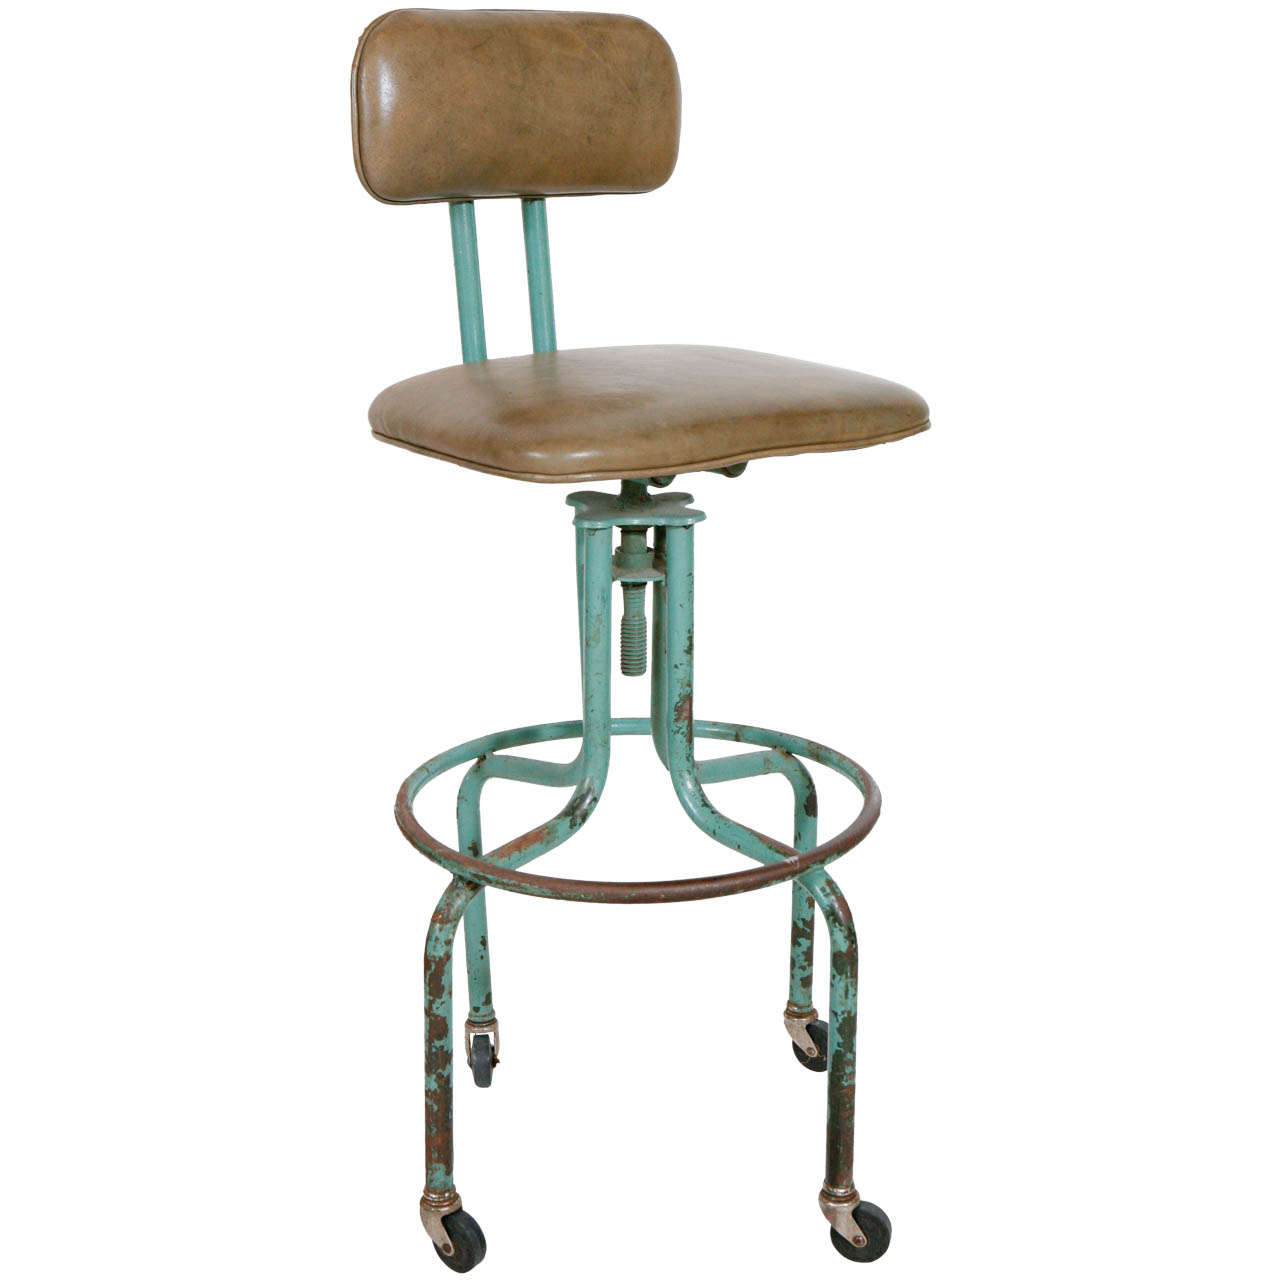 Vintage Green Workshop Stool with Nailhead Leather Seat  : X from 1stdibs.com size 1280 x 1280 jpeg 61kB